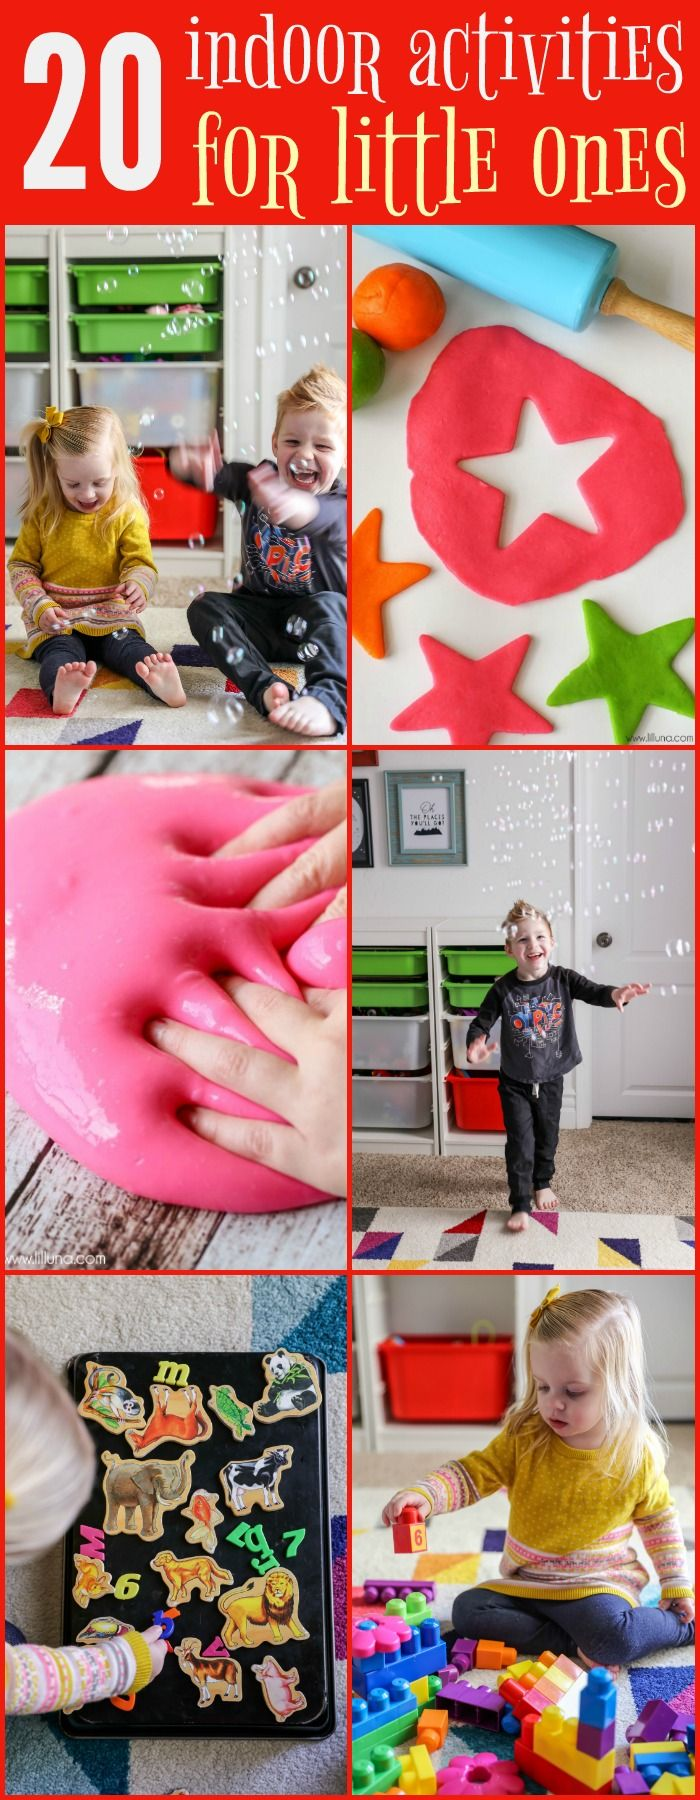 20+ Indoor Activities for Little Ones Indoor activities